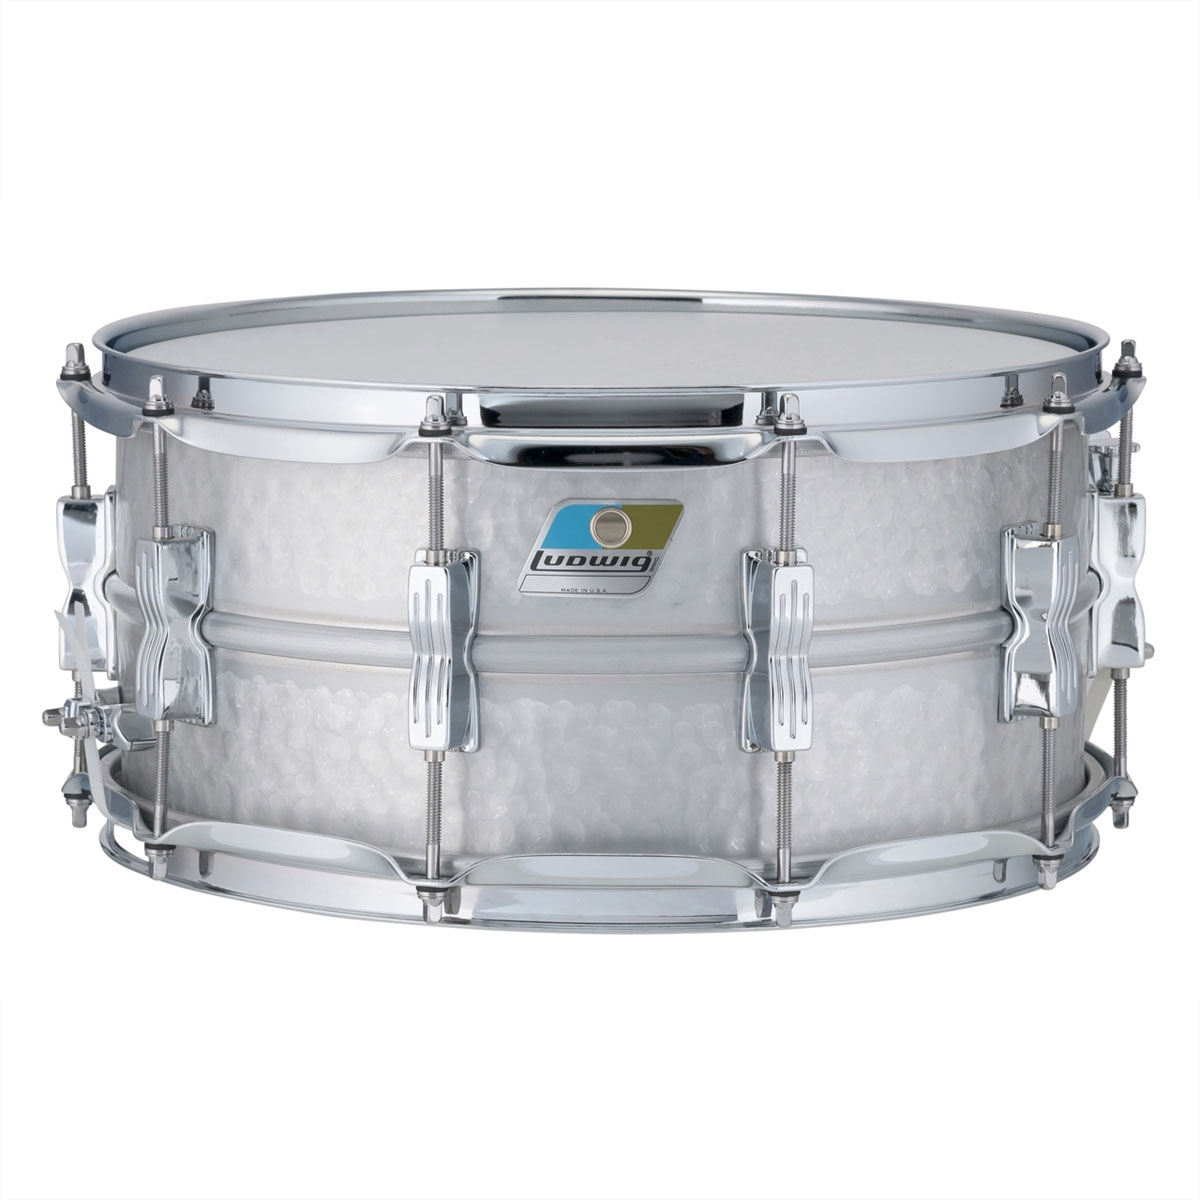 "Ludwig 6.5"" x 14"" Hammered Acrolite Snare Drum"